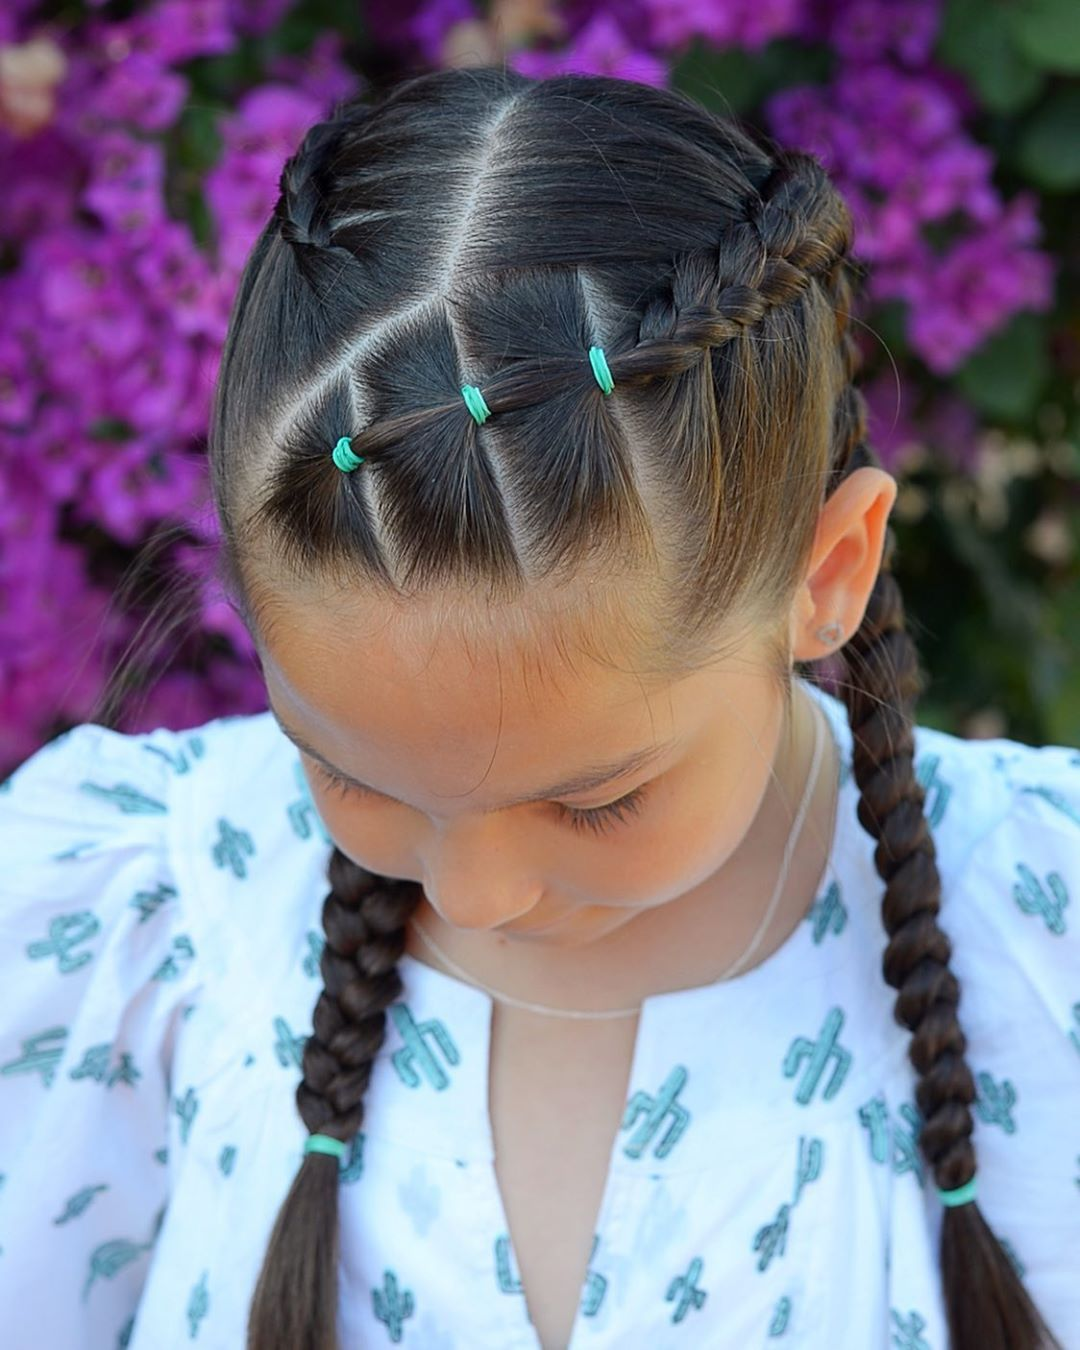 "Mariya On Instagram: ""Dutch Braids With Elastics For A Birthday Party Have A Great Day! . . . . . . . Braids Braidstyles Braidinghair Braiding…"" Braidstyles - Hair Beauty"